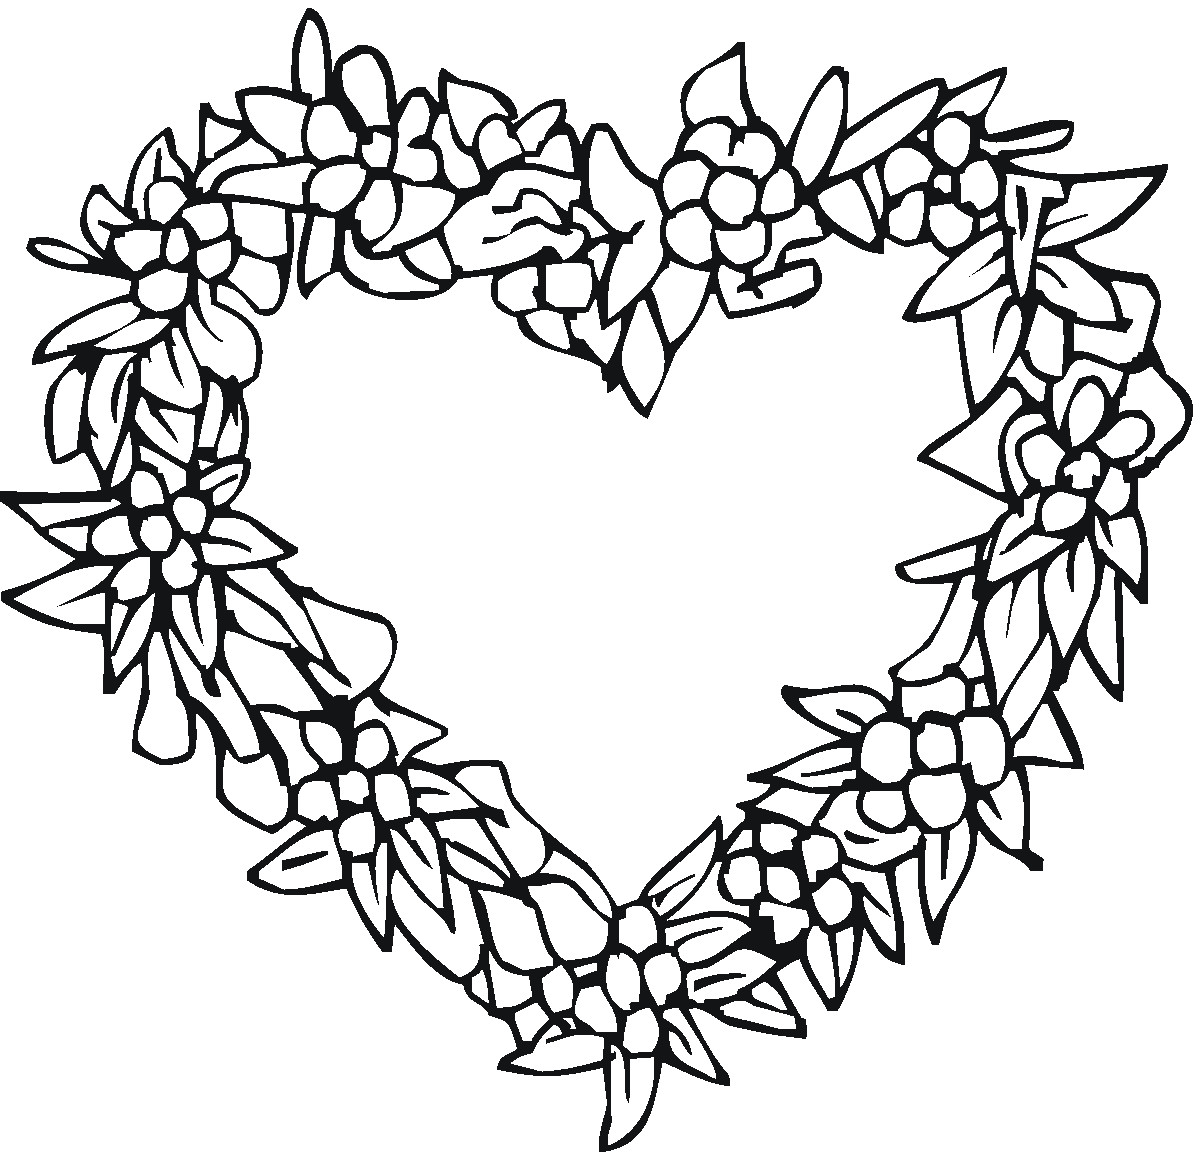 1200x1152 Coloring Pages For Teenagers Throughout Heart Sharry Me